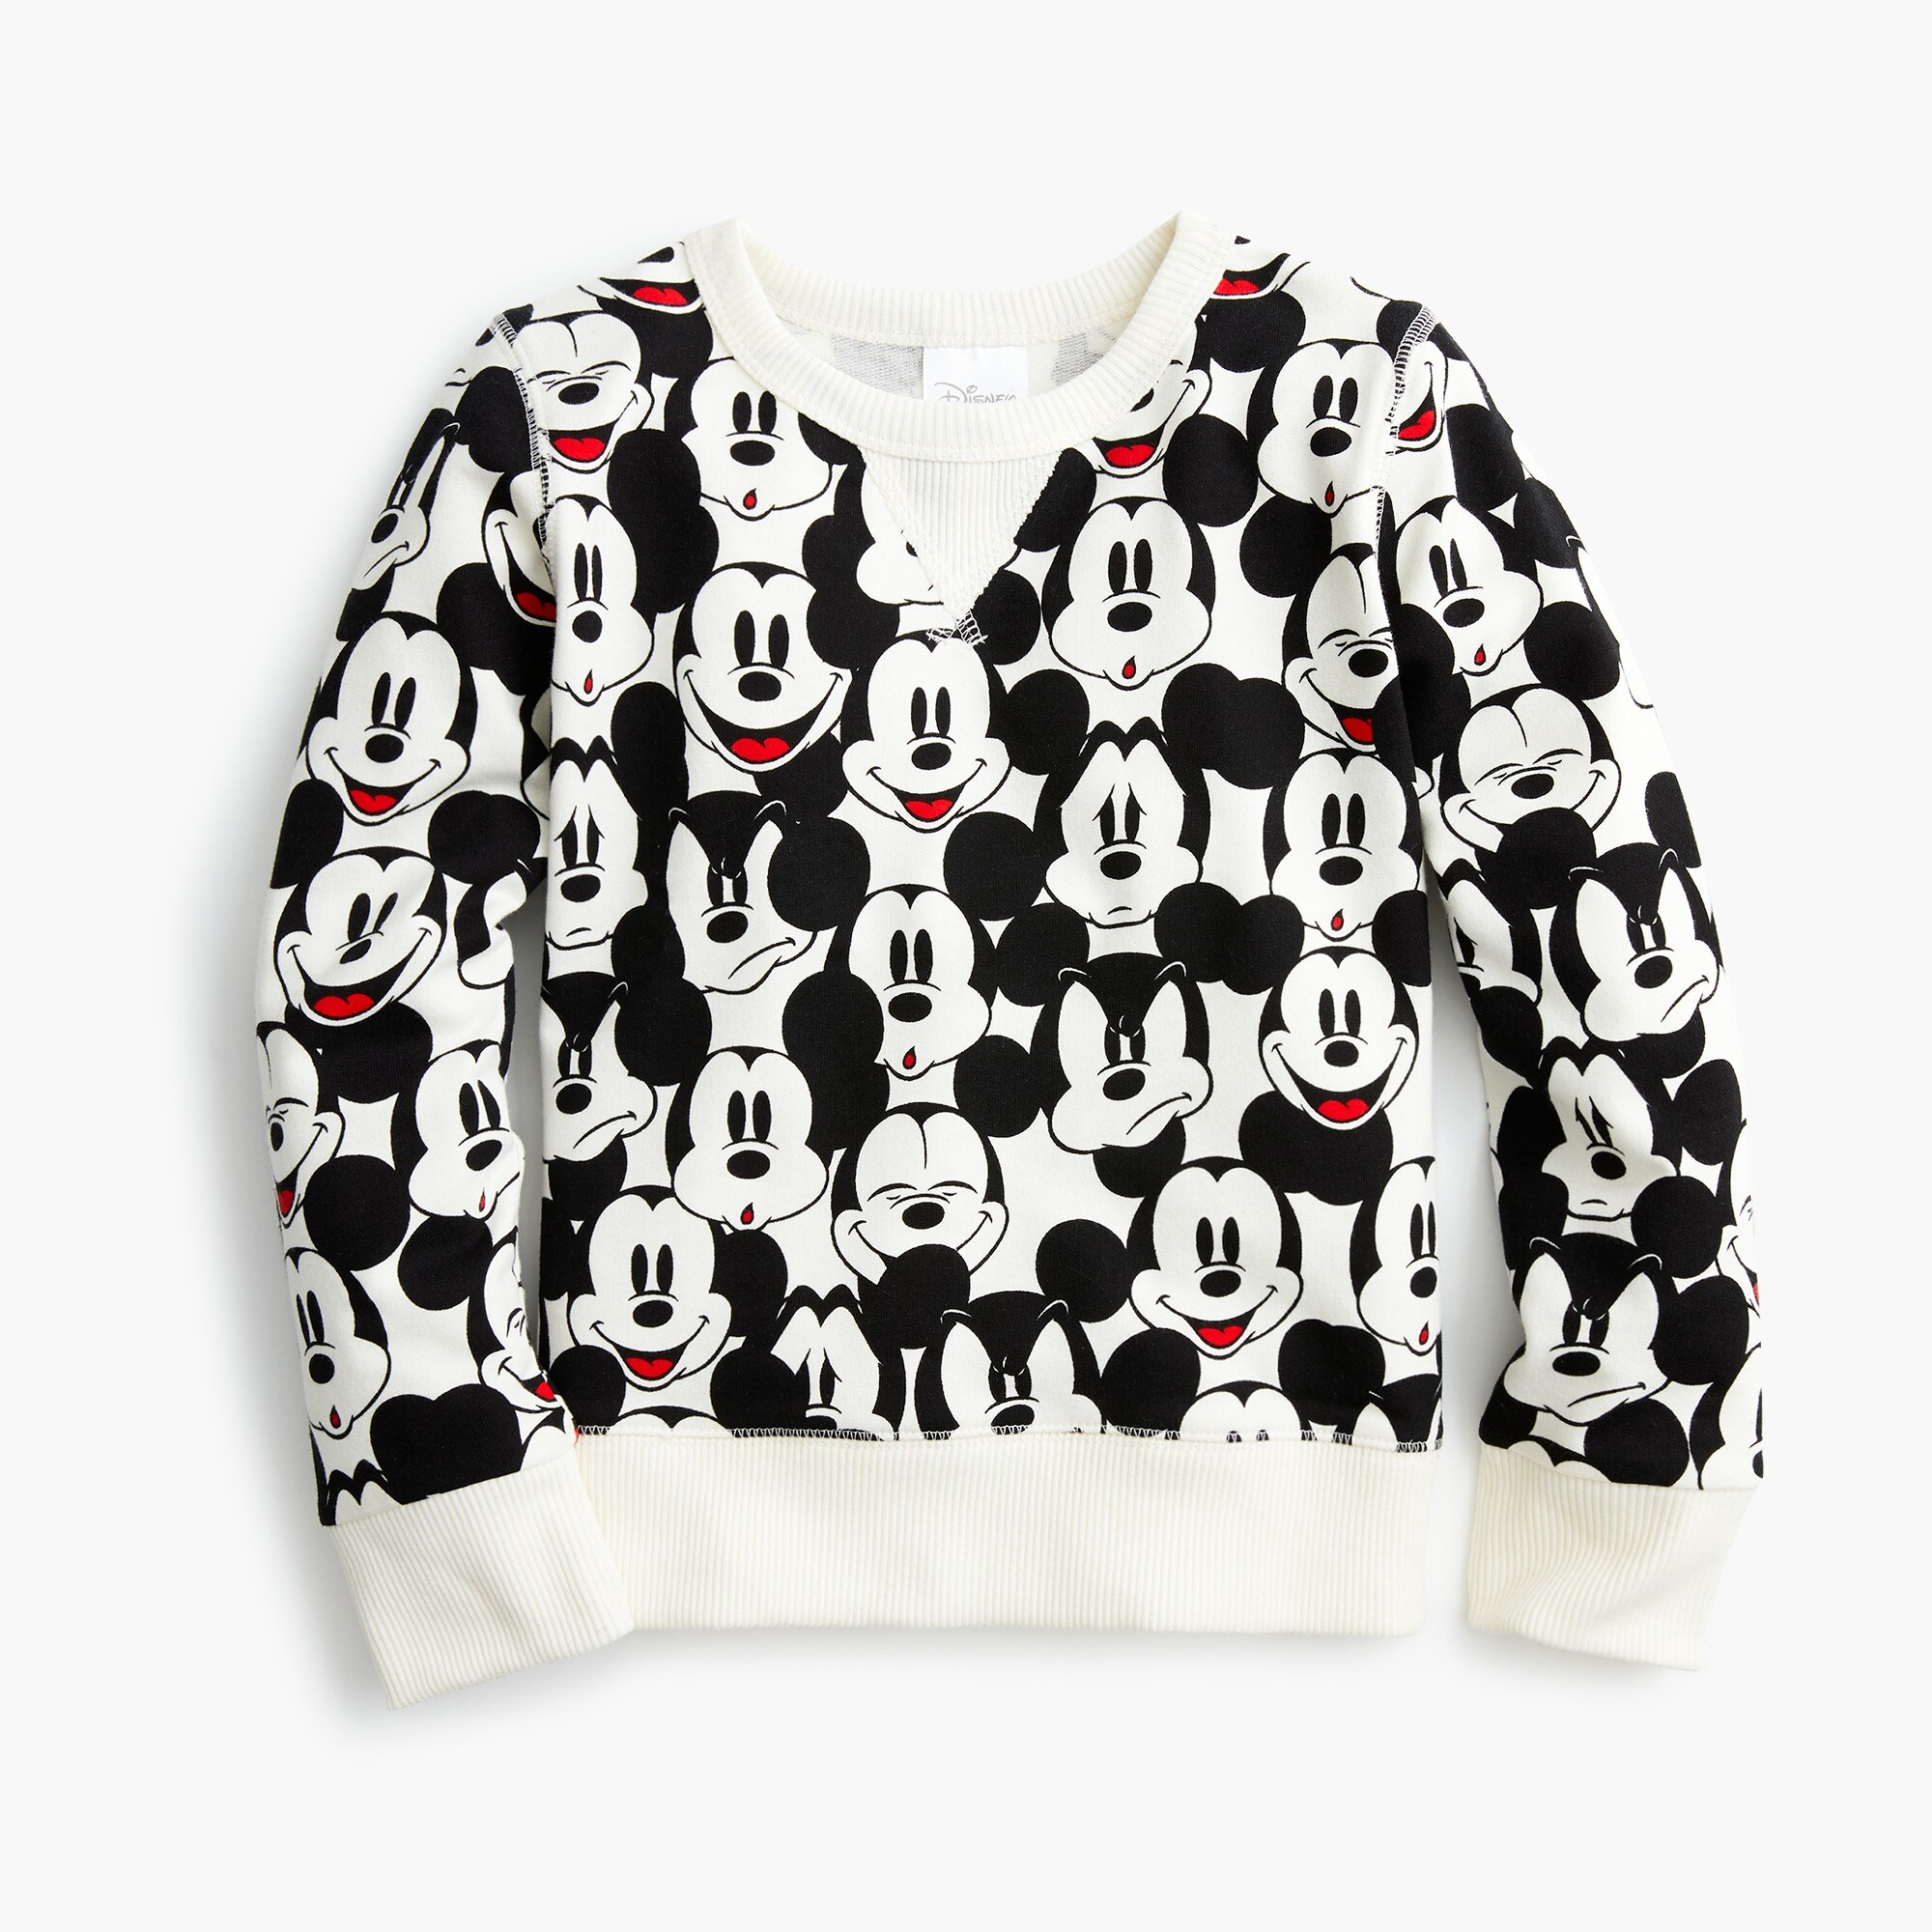 boys Kids' crewcuts X Disney® Mickey Mouse sweatshirt